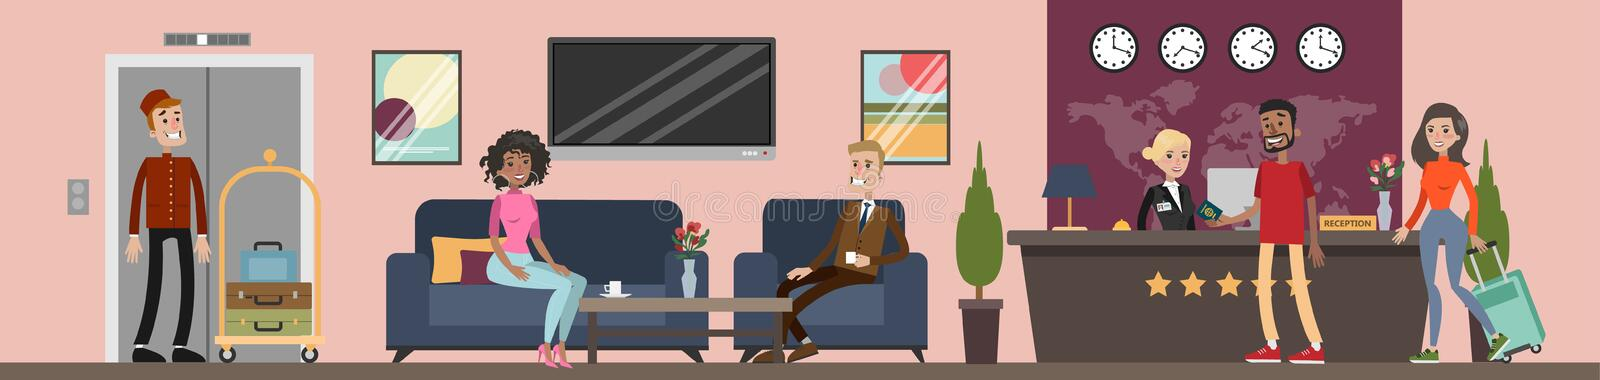 Reception at hotel. Reception at hotel with staff and visitors royalty free illustration